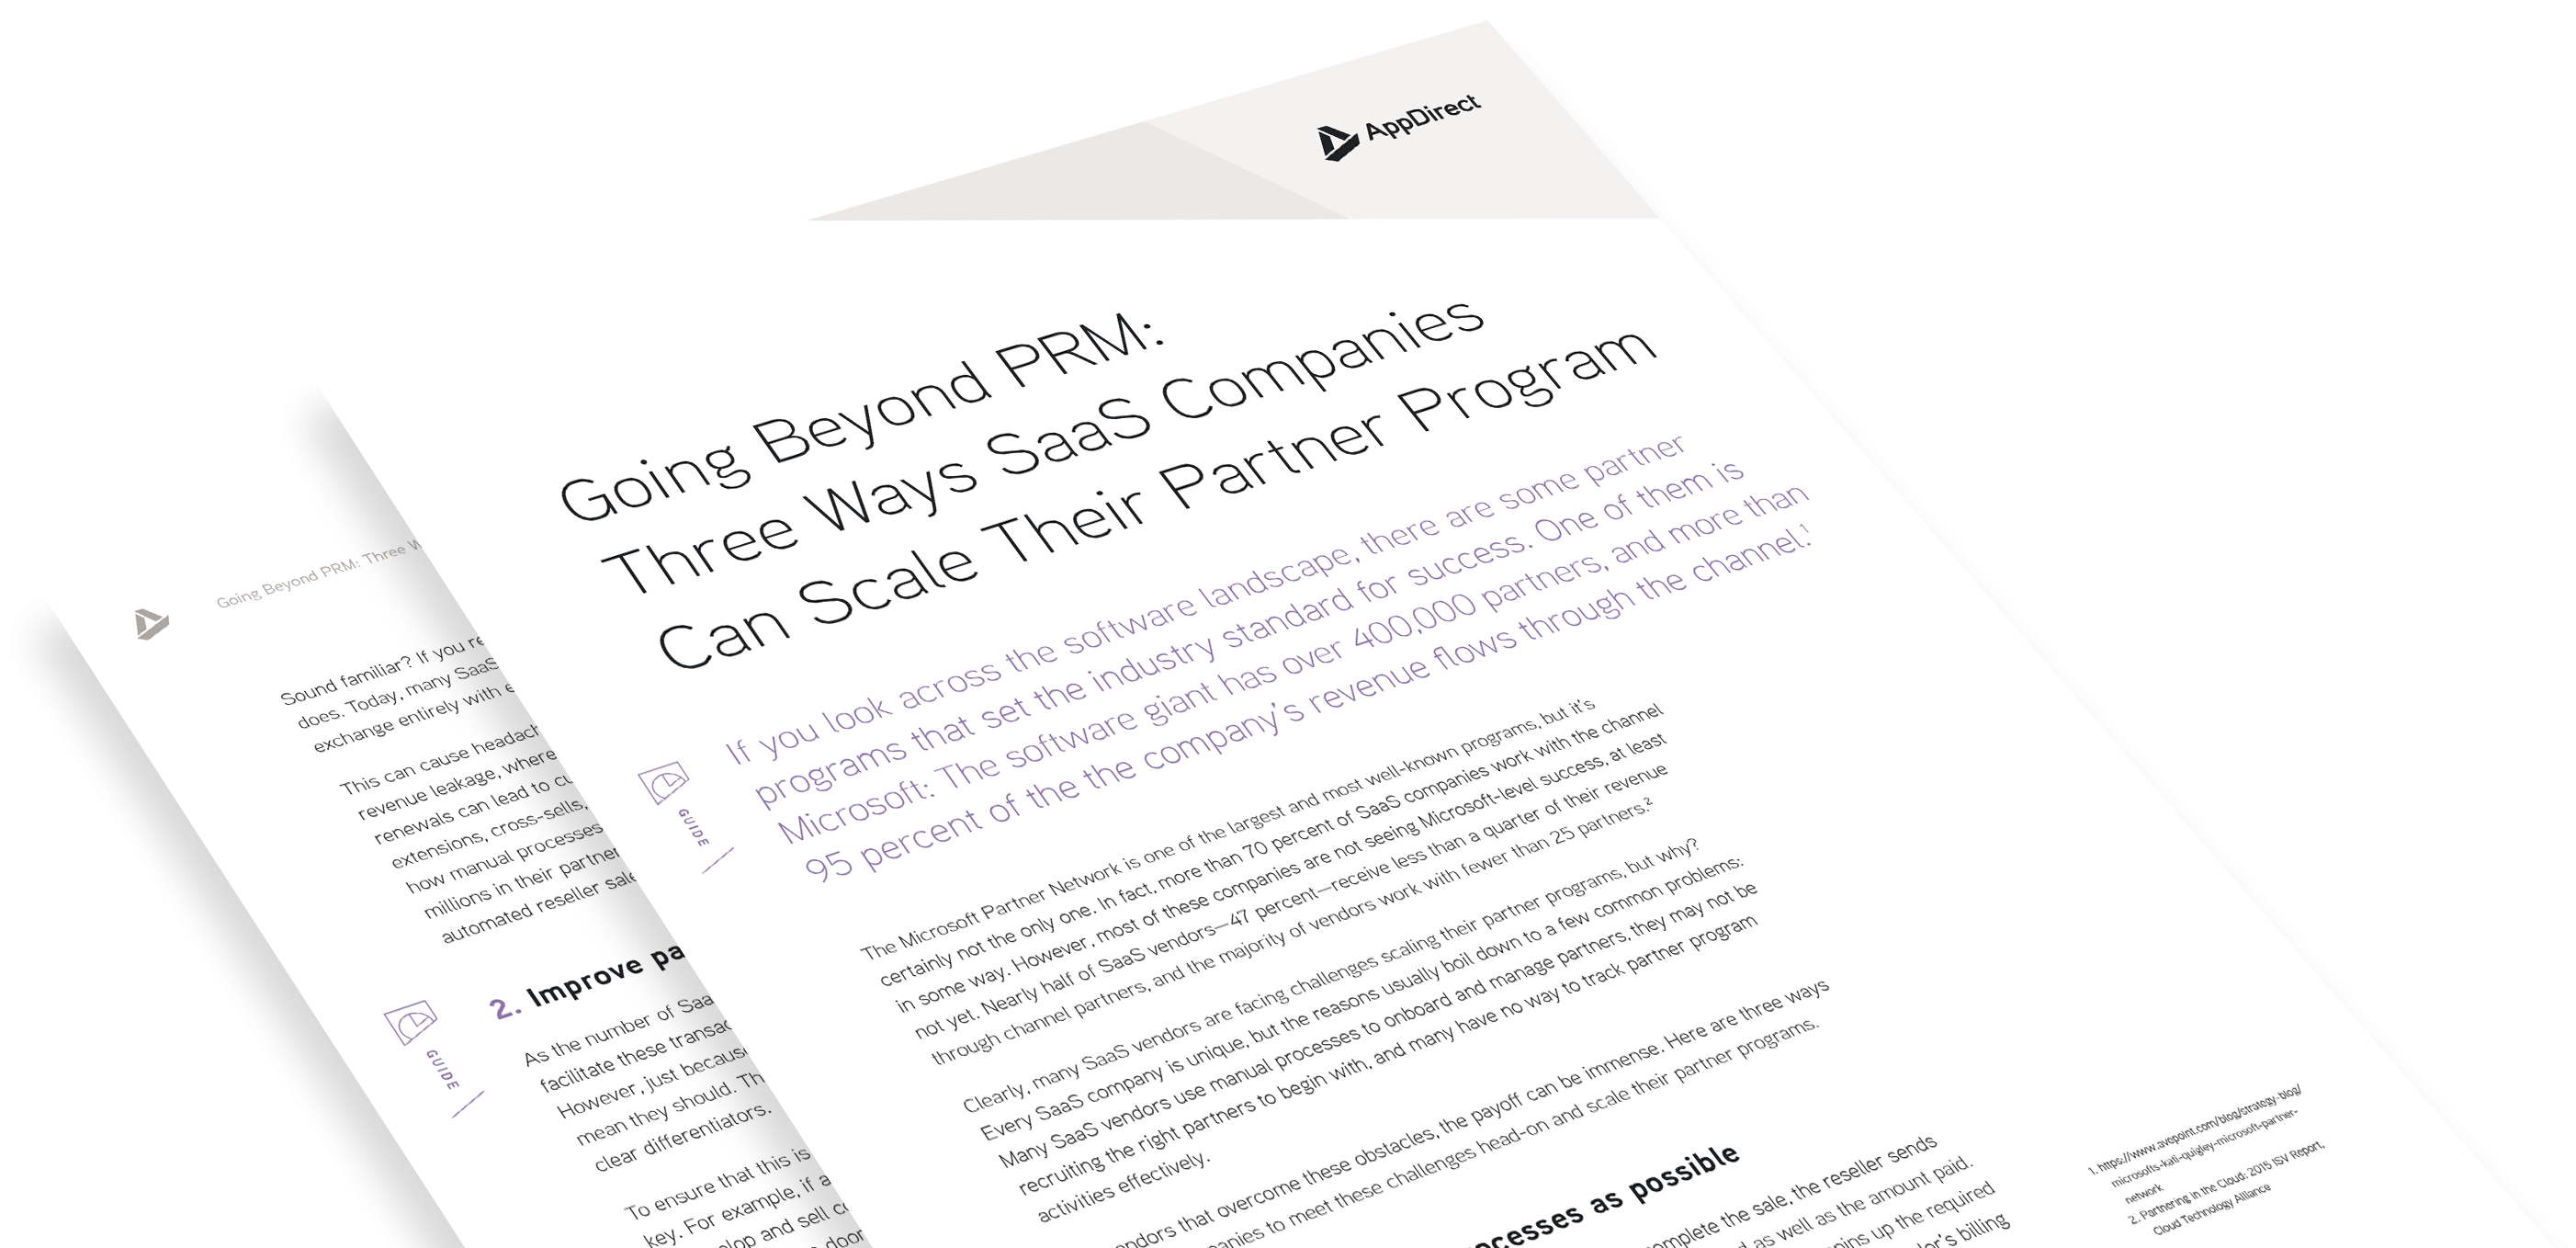 Going Beyond PRM: Three Ways SaaS Companies Can Scale Their Partner Program